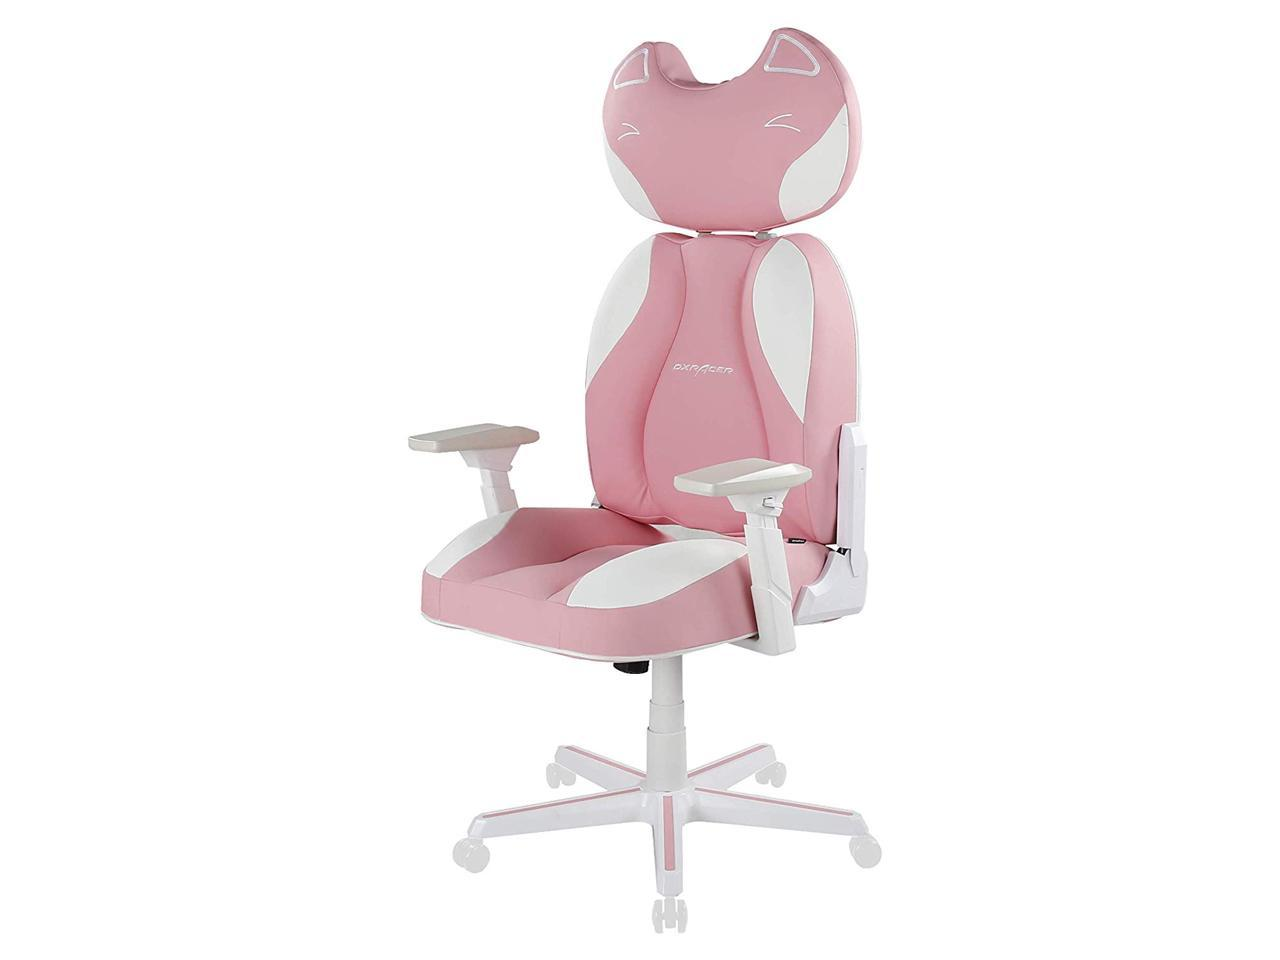 DX Racer DC/JA001/PW Female Anchor Chair Racing Bucket Seat Office Chair Gaming Chair